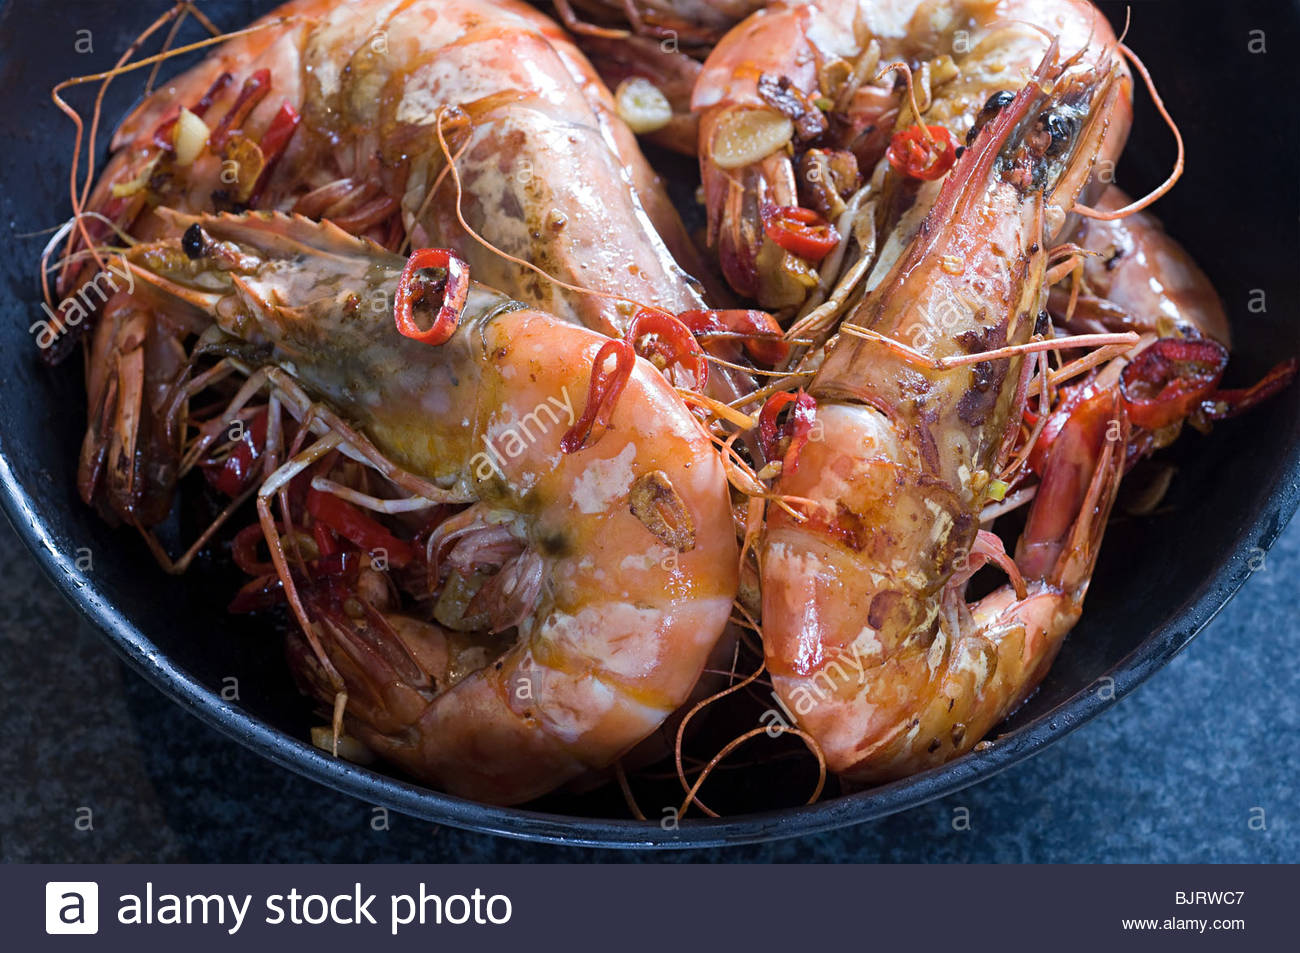 Tiger prawns with chilli - Stock Image